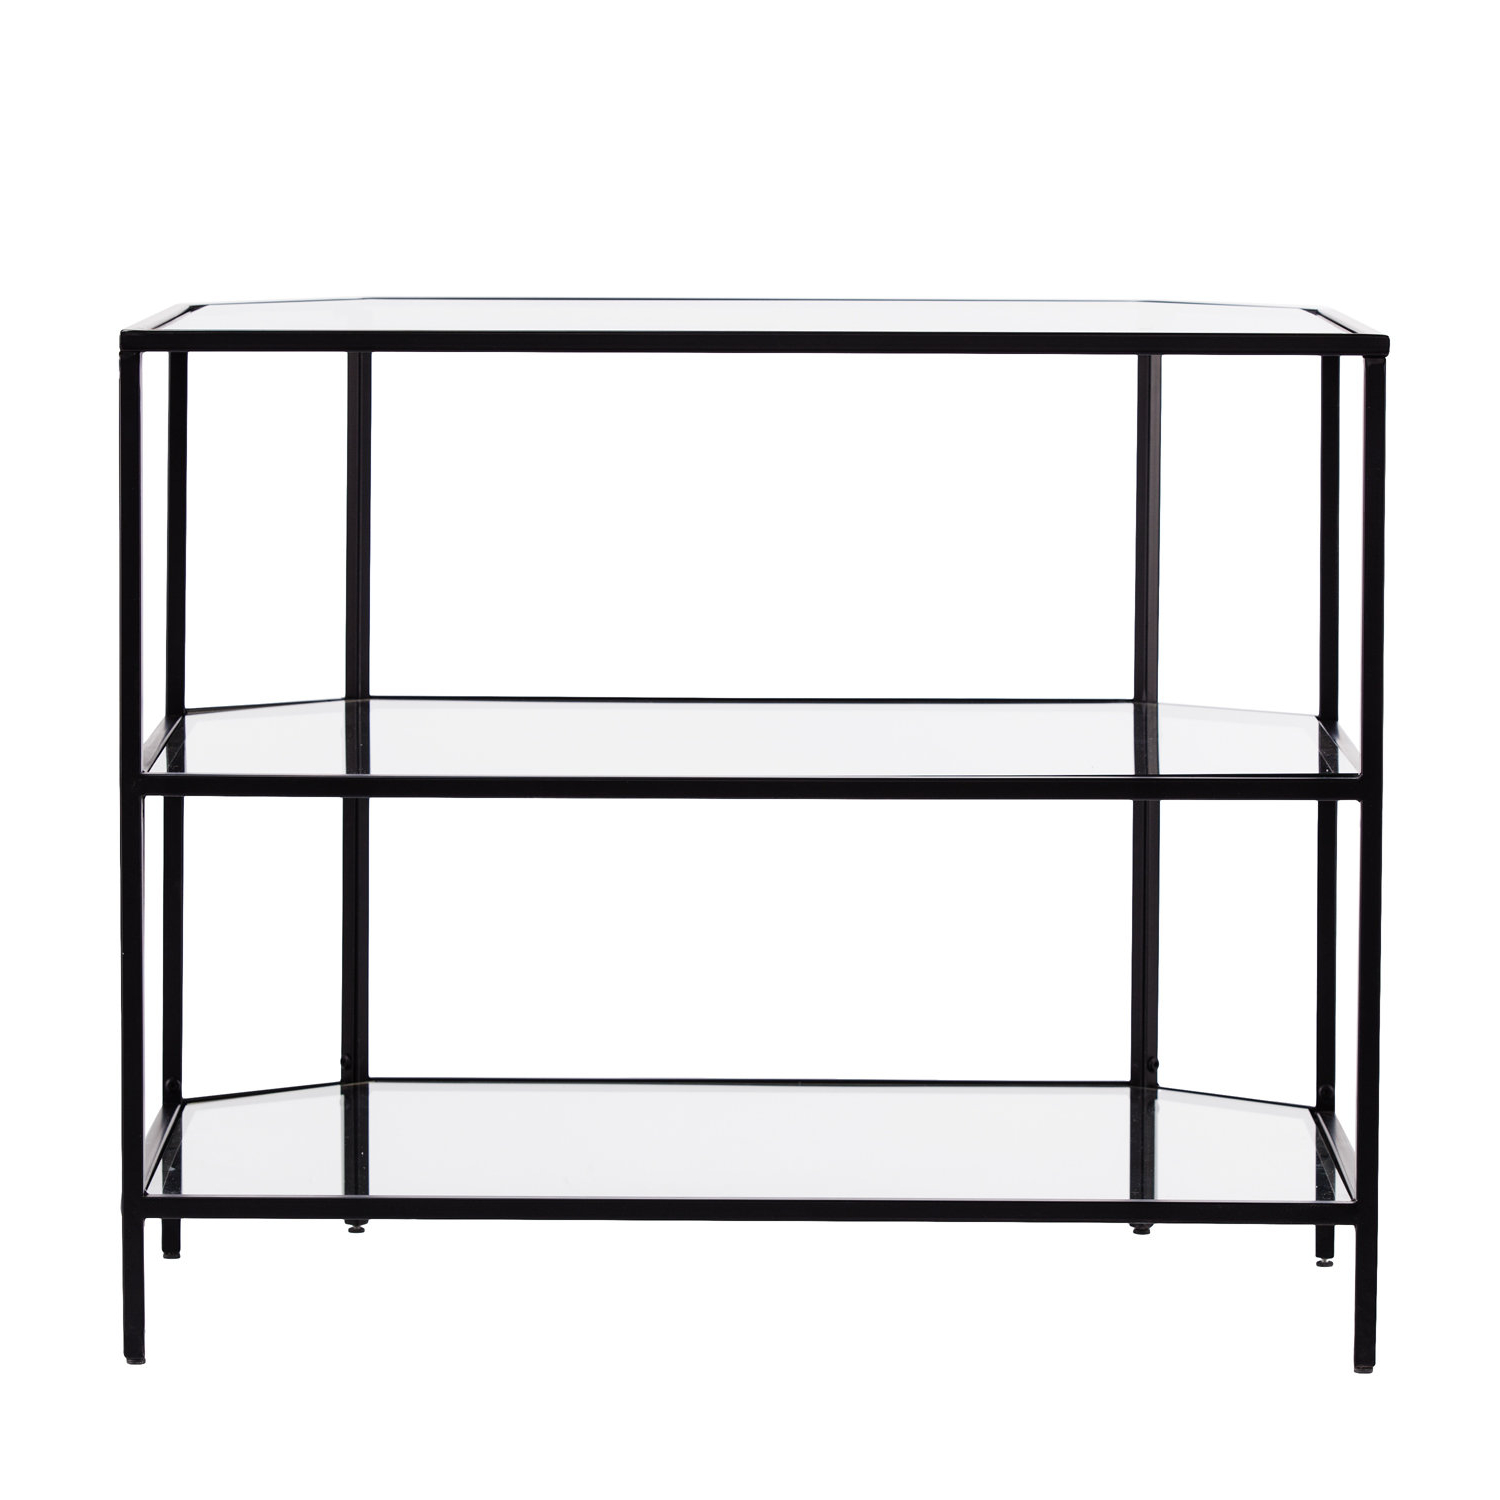 """Famous Cleasby Tv Stand For Tvs Up To 32"""" Throughout Ericka Tv Stands For Tvs Up To 42"""" (View 14 of 20)"""